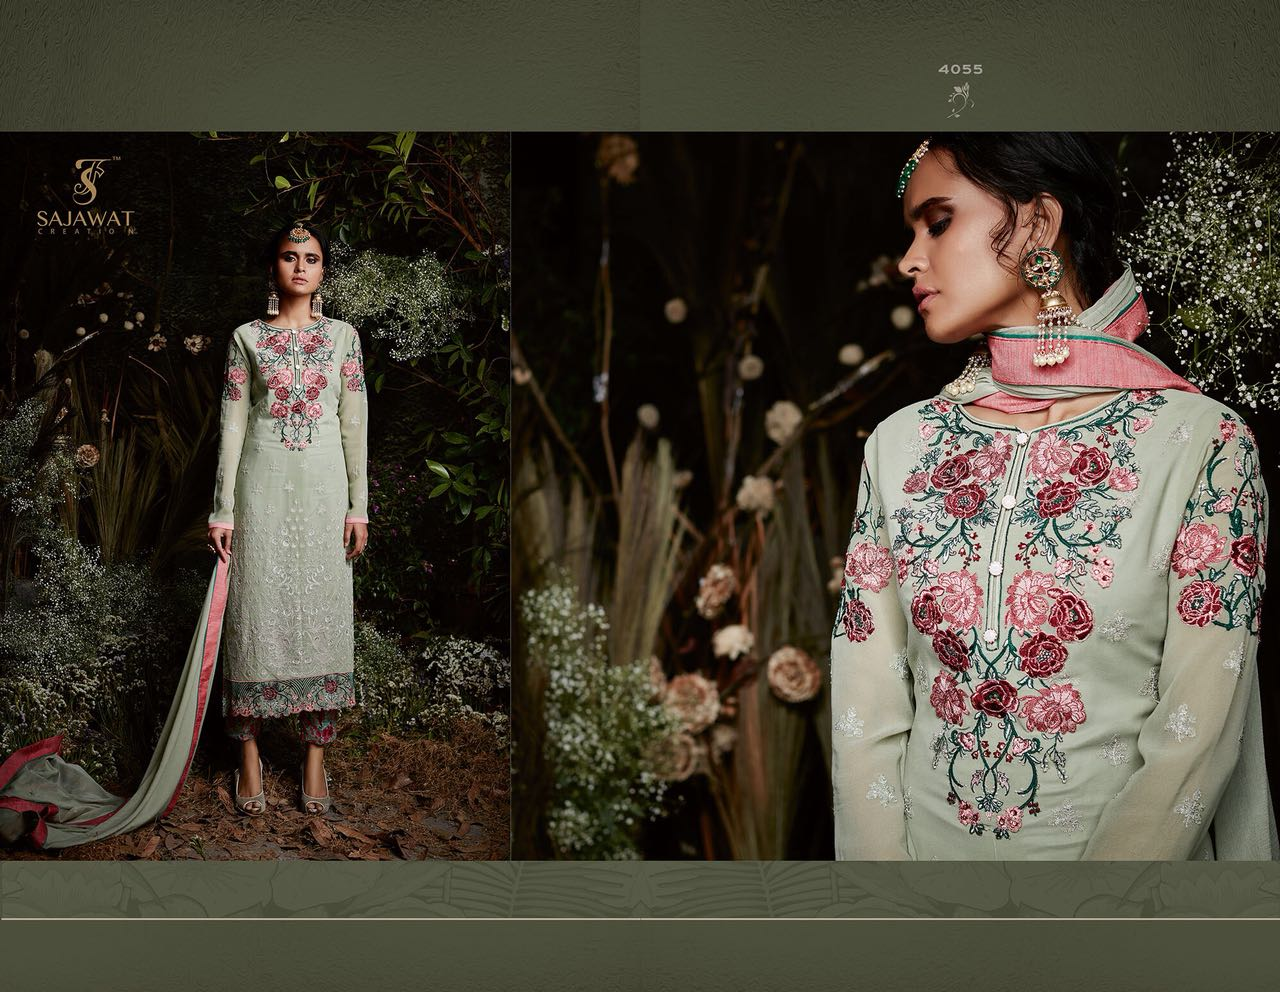 Sajawat Creation Taj Maria B Eid Collection 4055